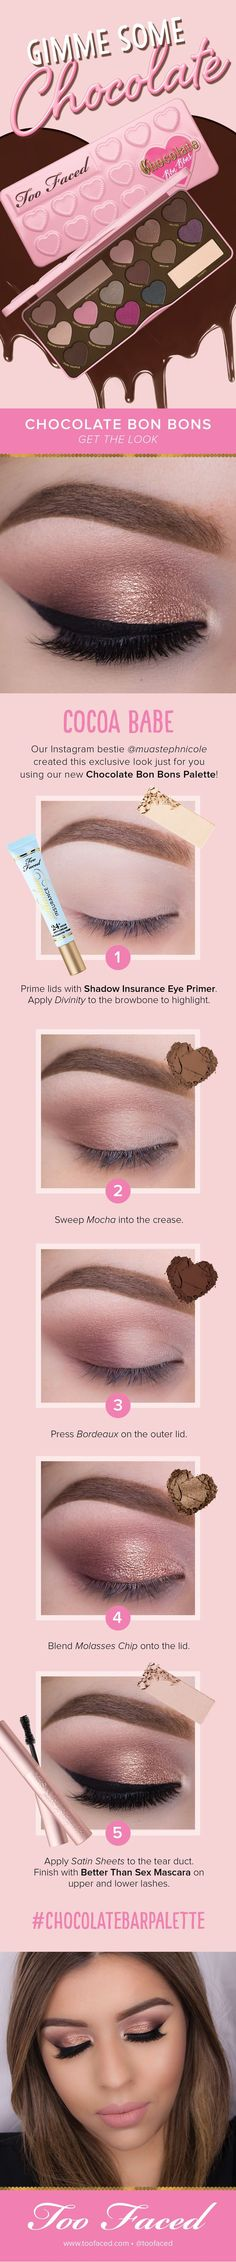 https://www.toofaced.com/p/eye-shadow-palettes/chocolate-bon-bons-eye-shadow-collection/